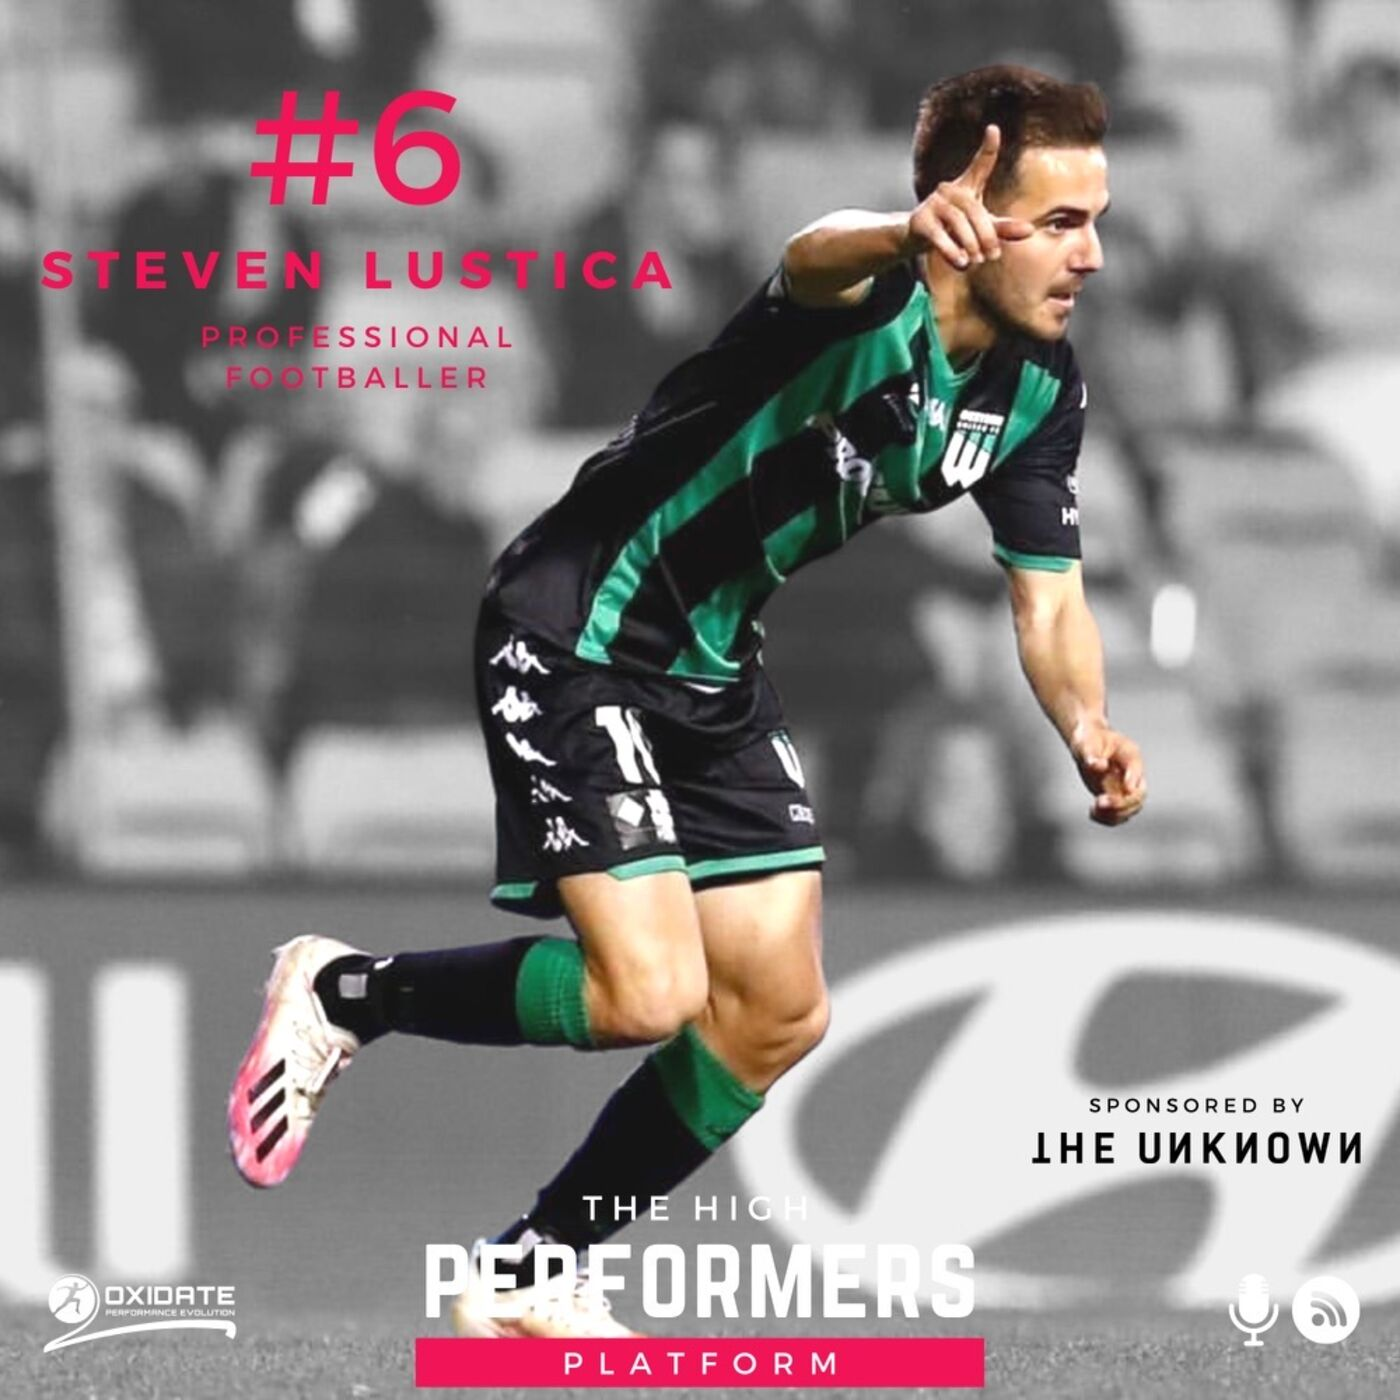 #6: Steven Lustica - Professional Footballer & A League Player - The discipline it takes to make it overseas, the importance of looking after your body and engaging in the right types of training